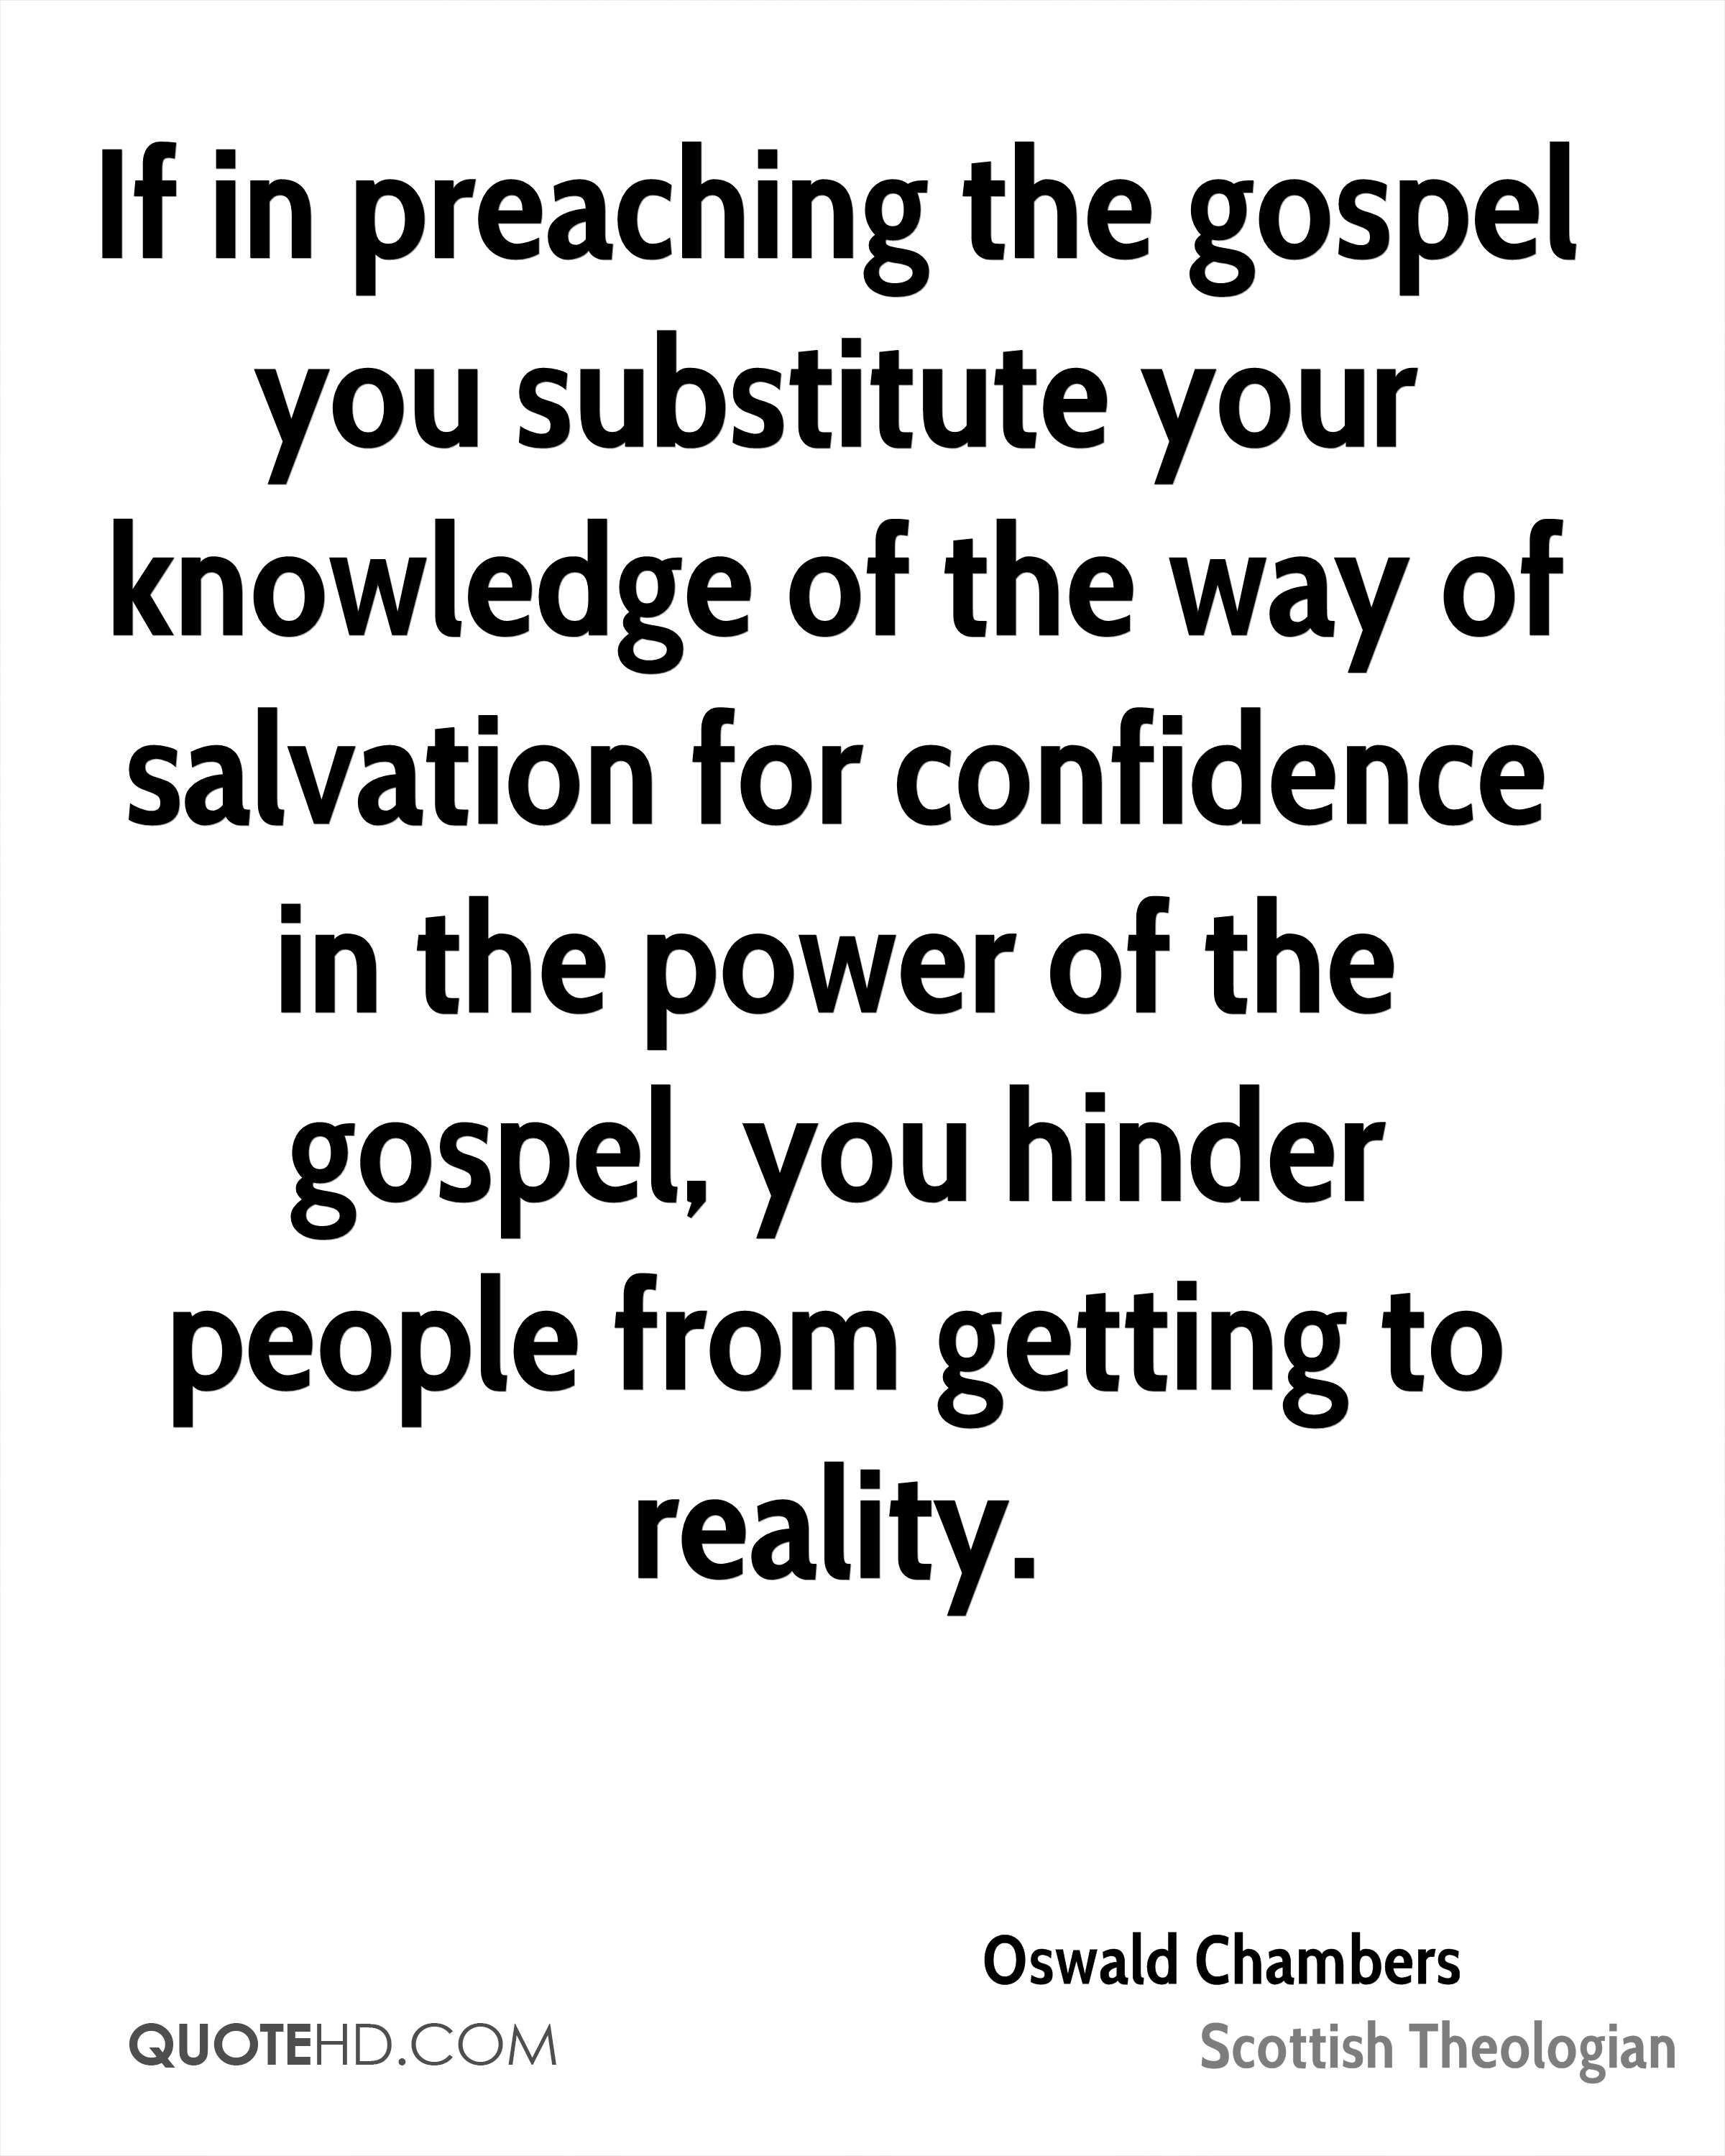 If in preaching the gospel you substitute your knowledge of the way of salvation for confidence in the power of the gospel, you hinder people from getting to reality.